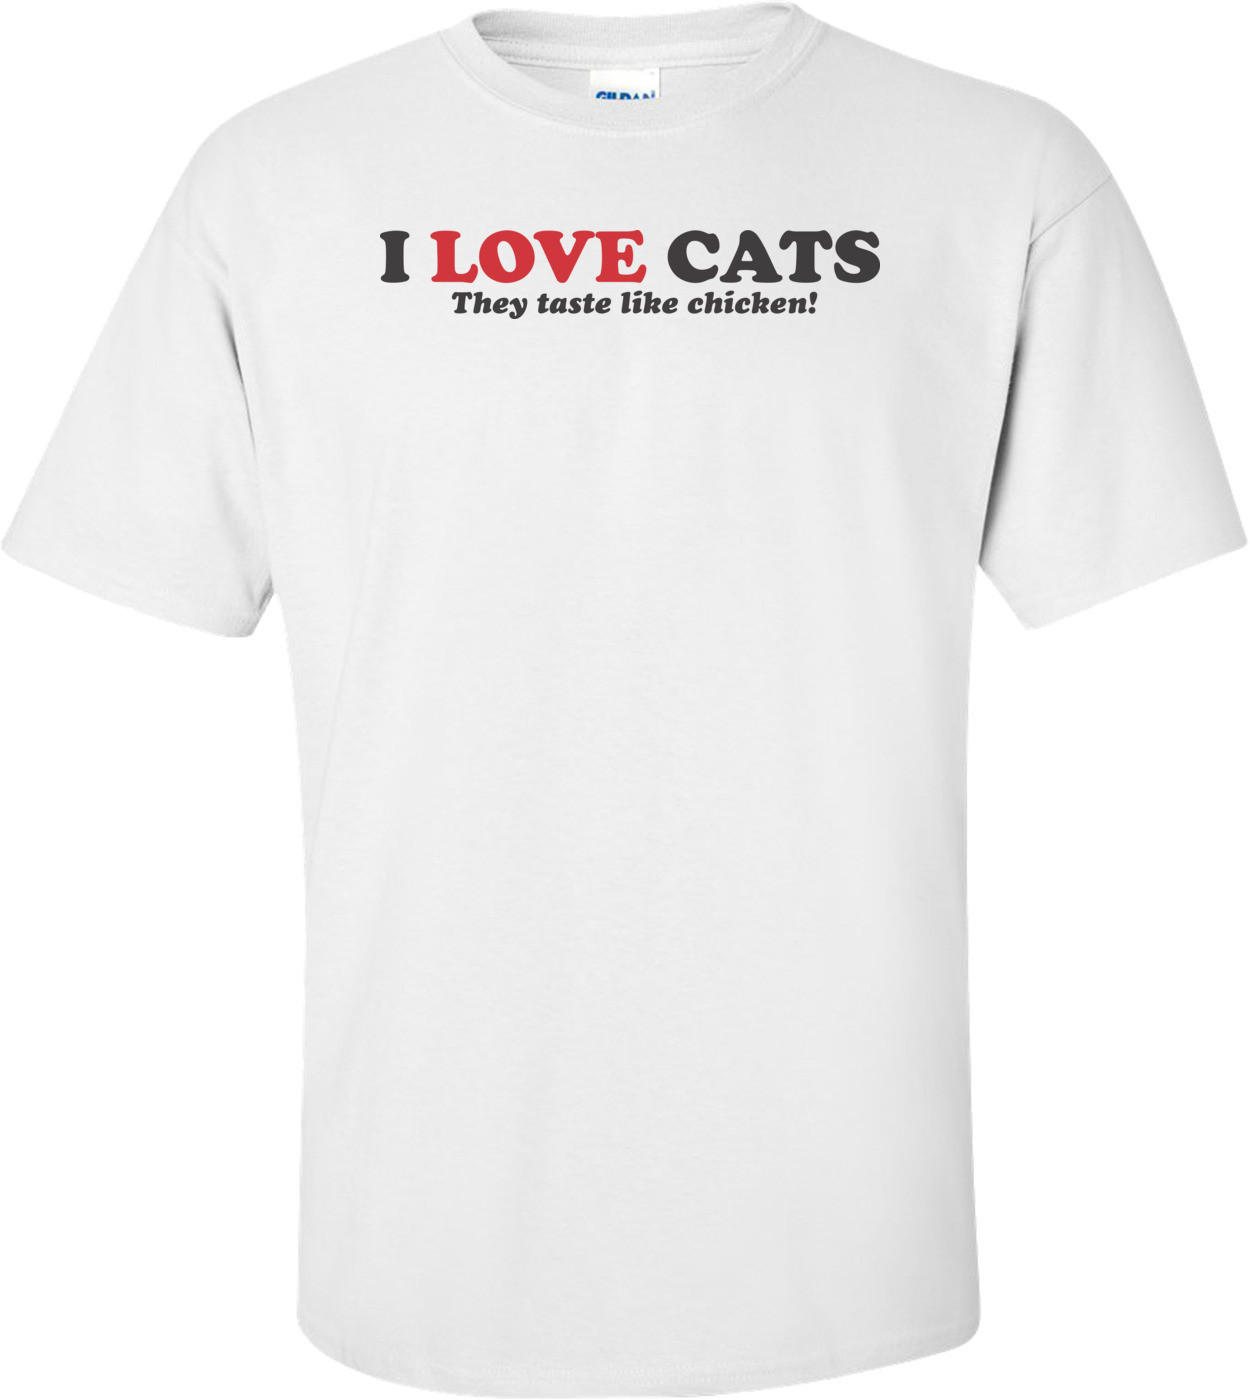 I Love Cats They Taste Like Chicken T-shirt